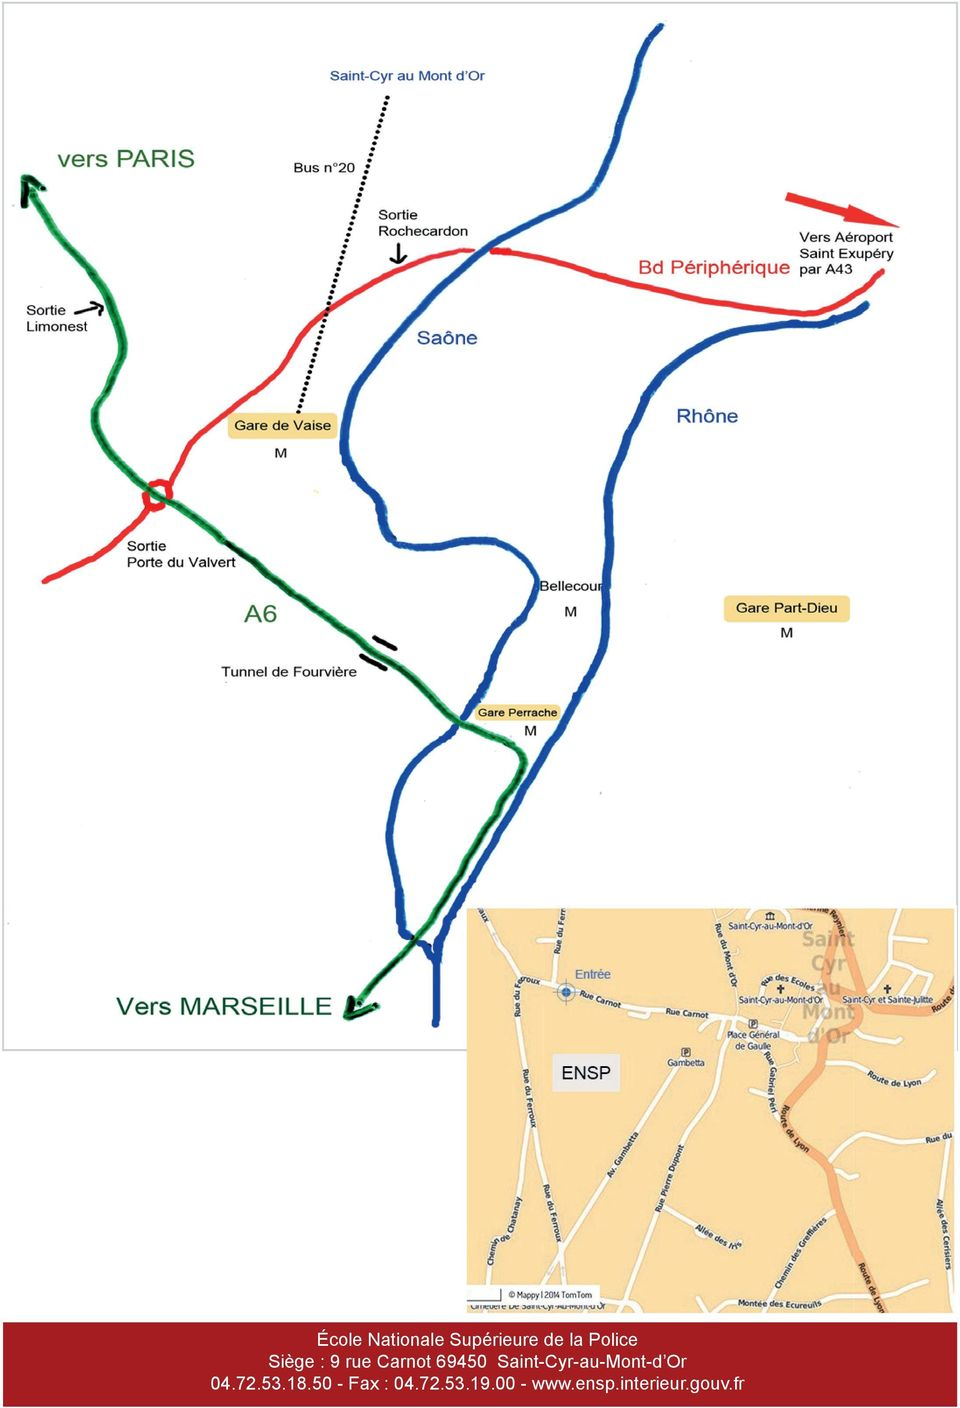 Saint-Cyr-au-Mont-d Or 04.72.53.18.